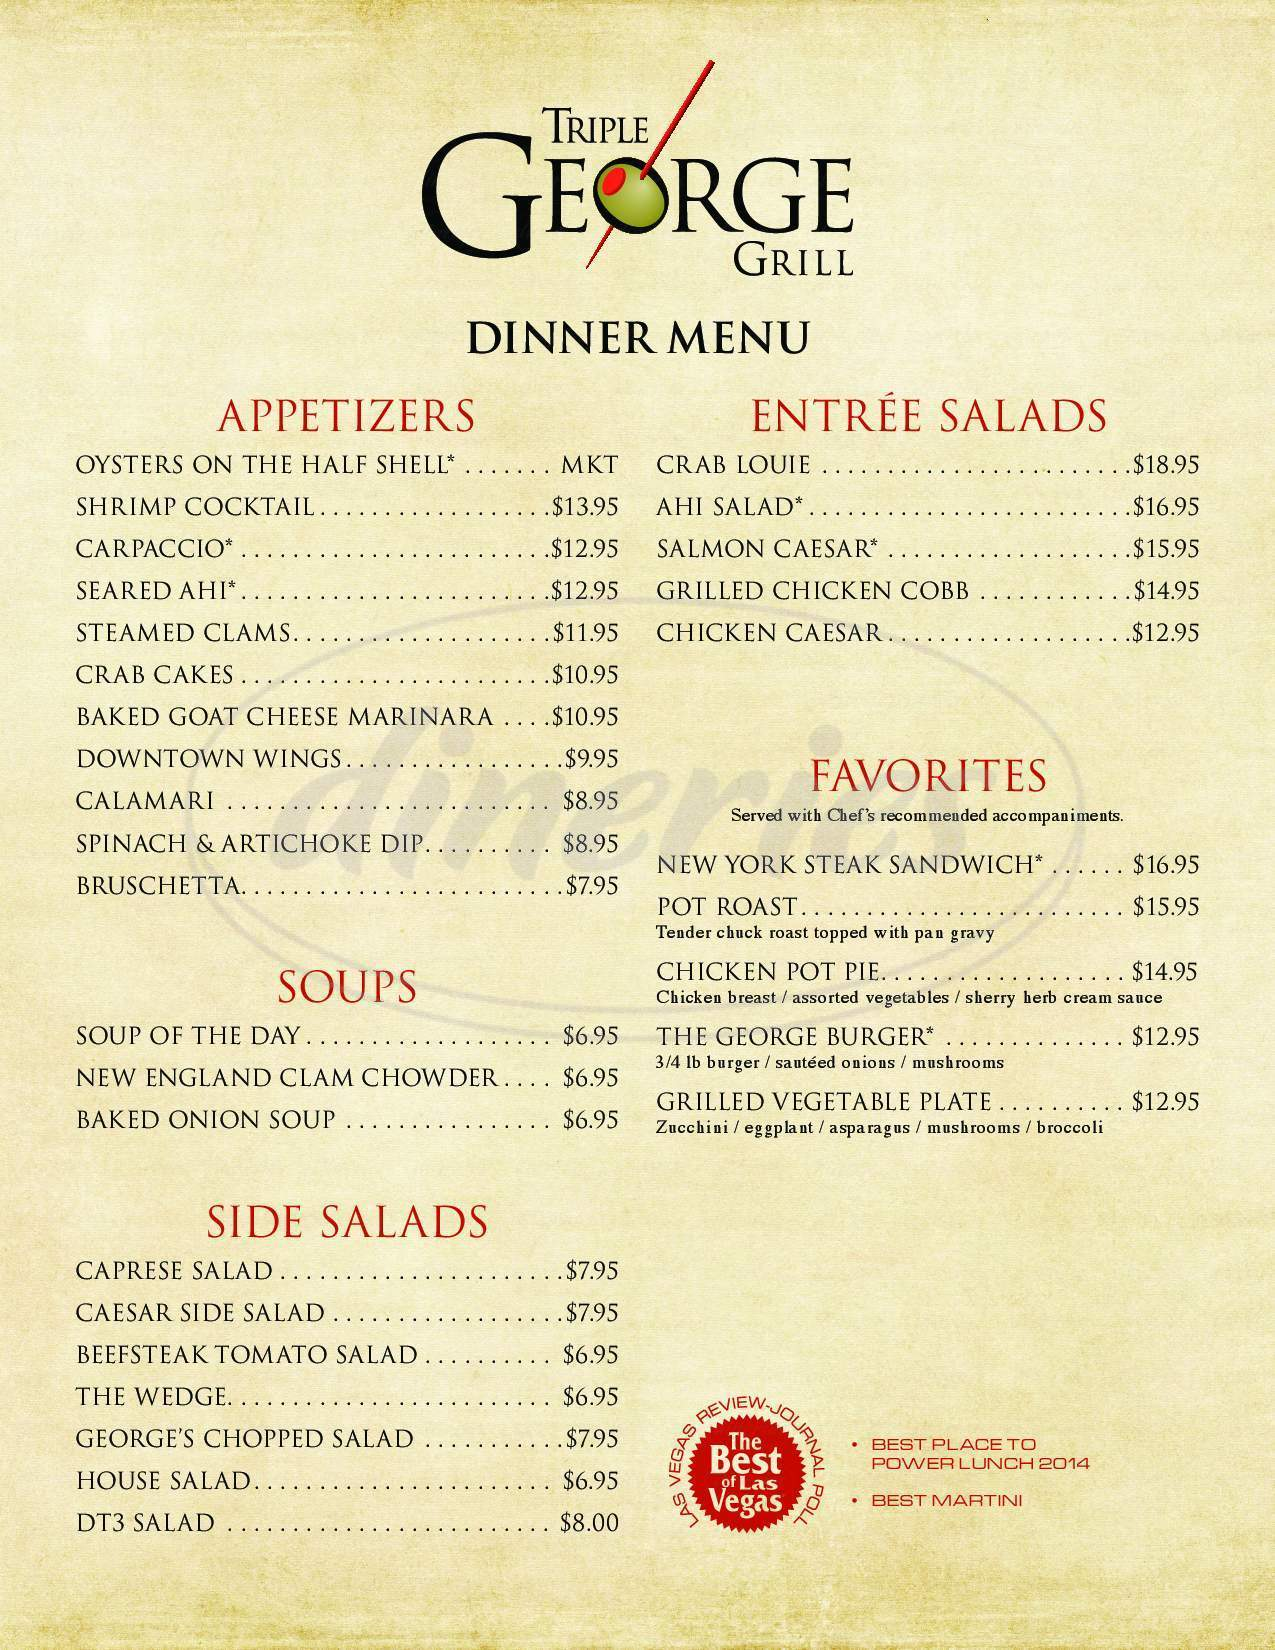 menu for Triple George Grill